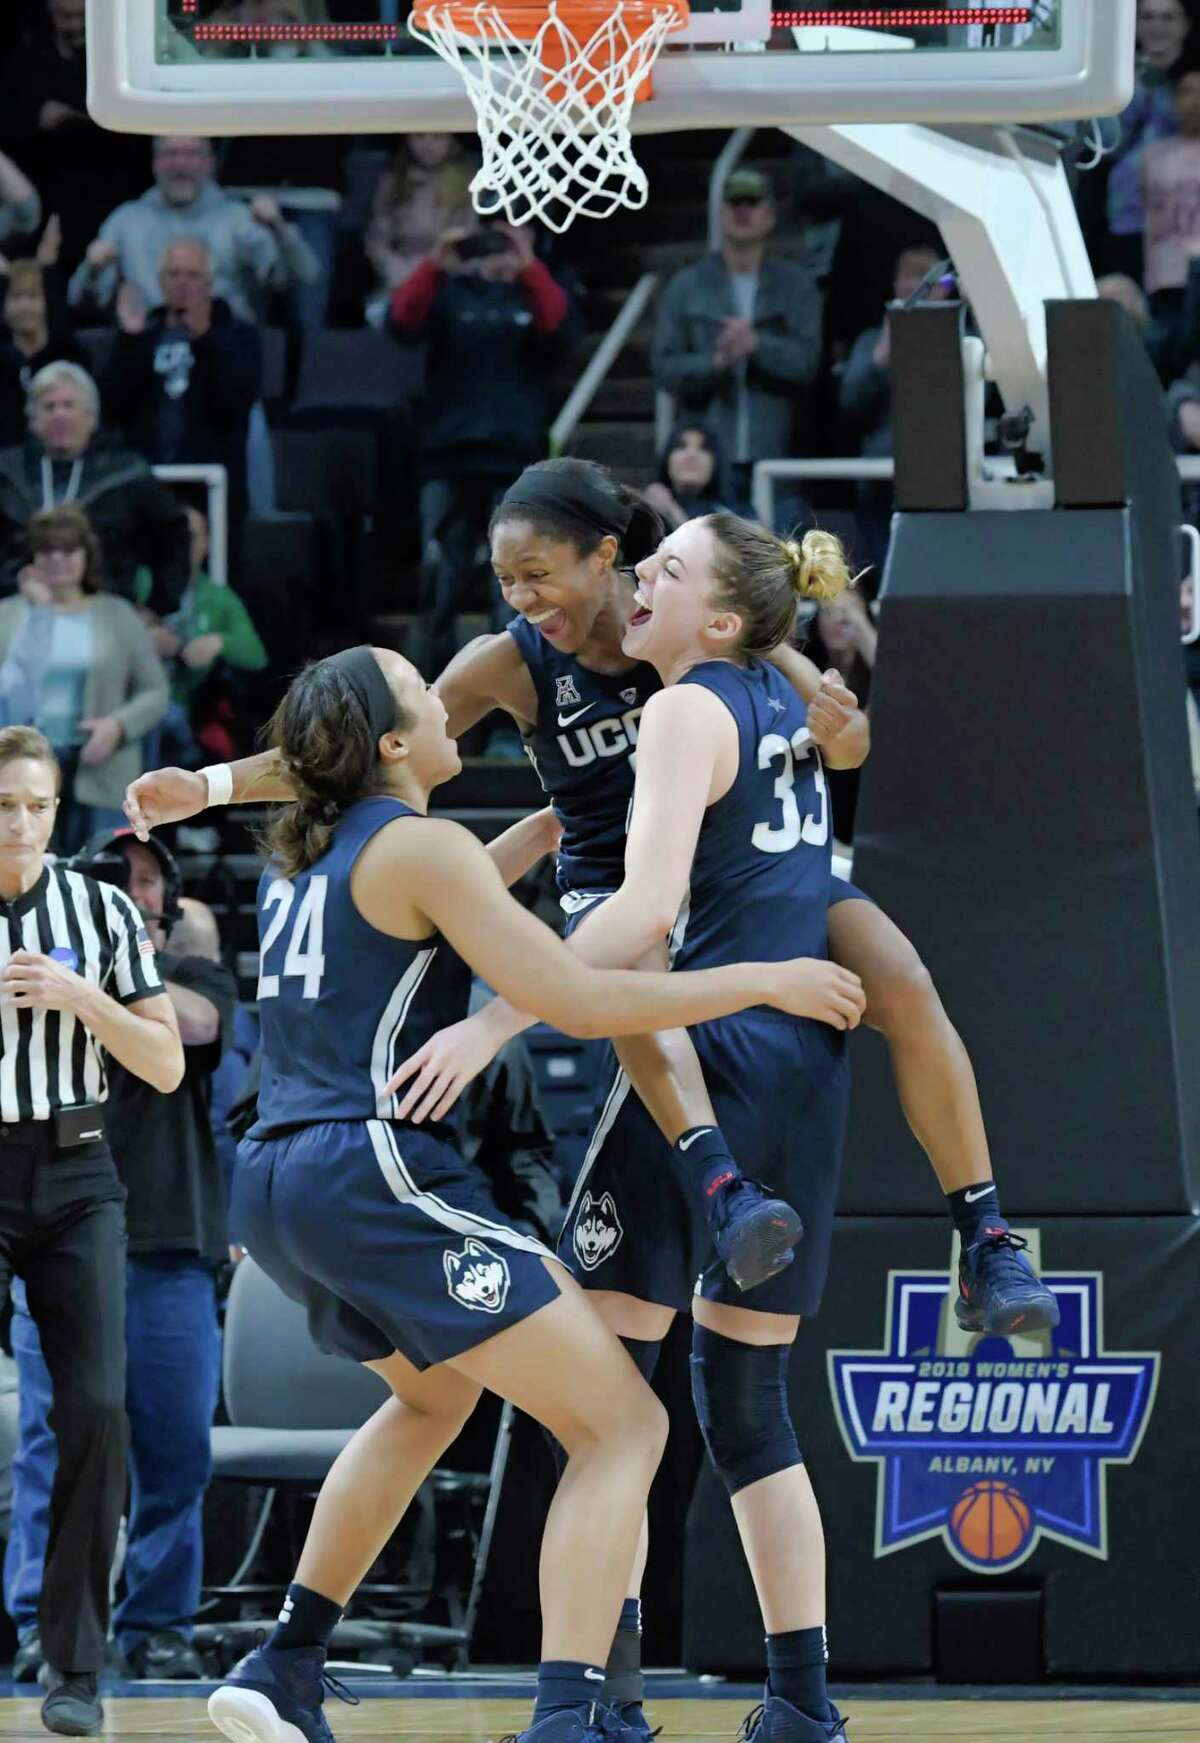 UConn's Napheesa Collier, left, Crystal Dangerfield, center, and Katie Lou Samuelson celebrate their win over Louisville in the final of the Albany Regional NCAA Women's Basketball Championship on Sunday, March 31, 2019, in Albany, N.Y. (Paul Buckowski/Times Union)